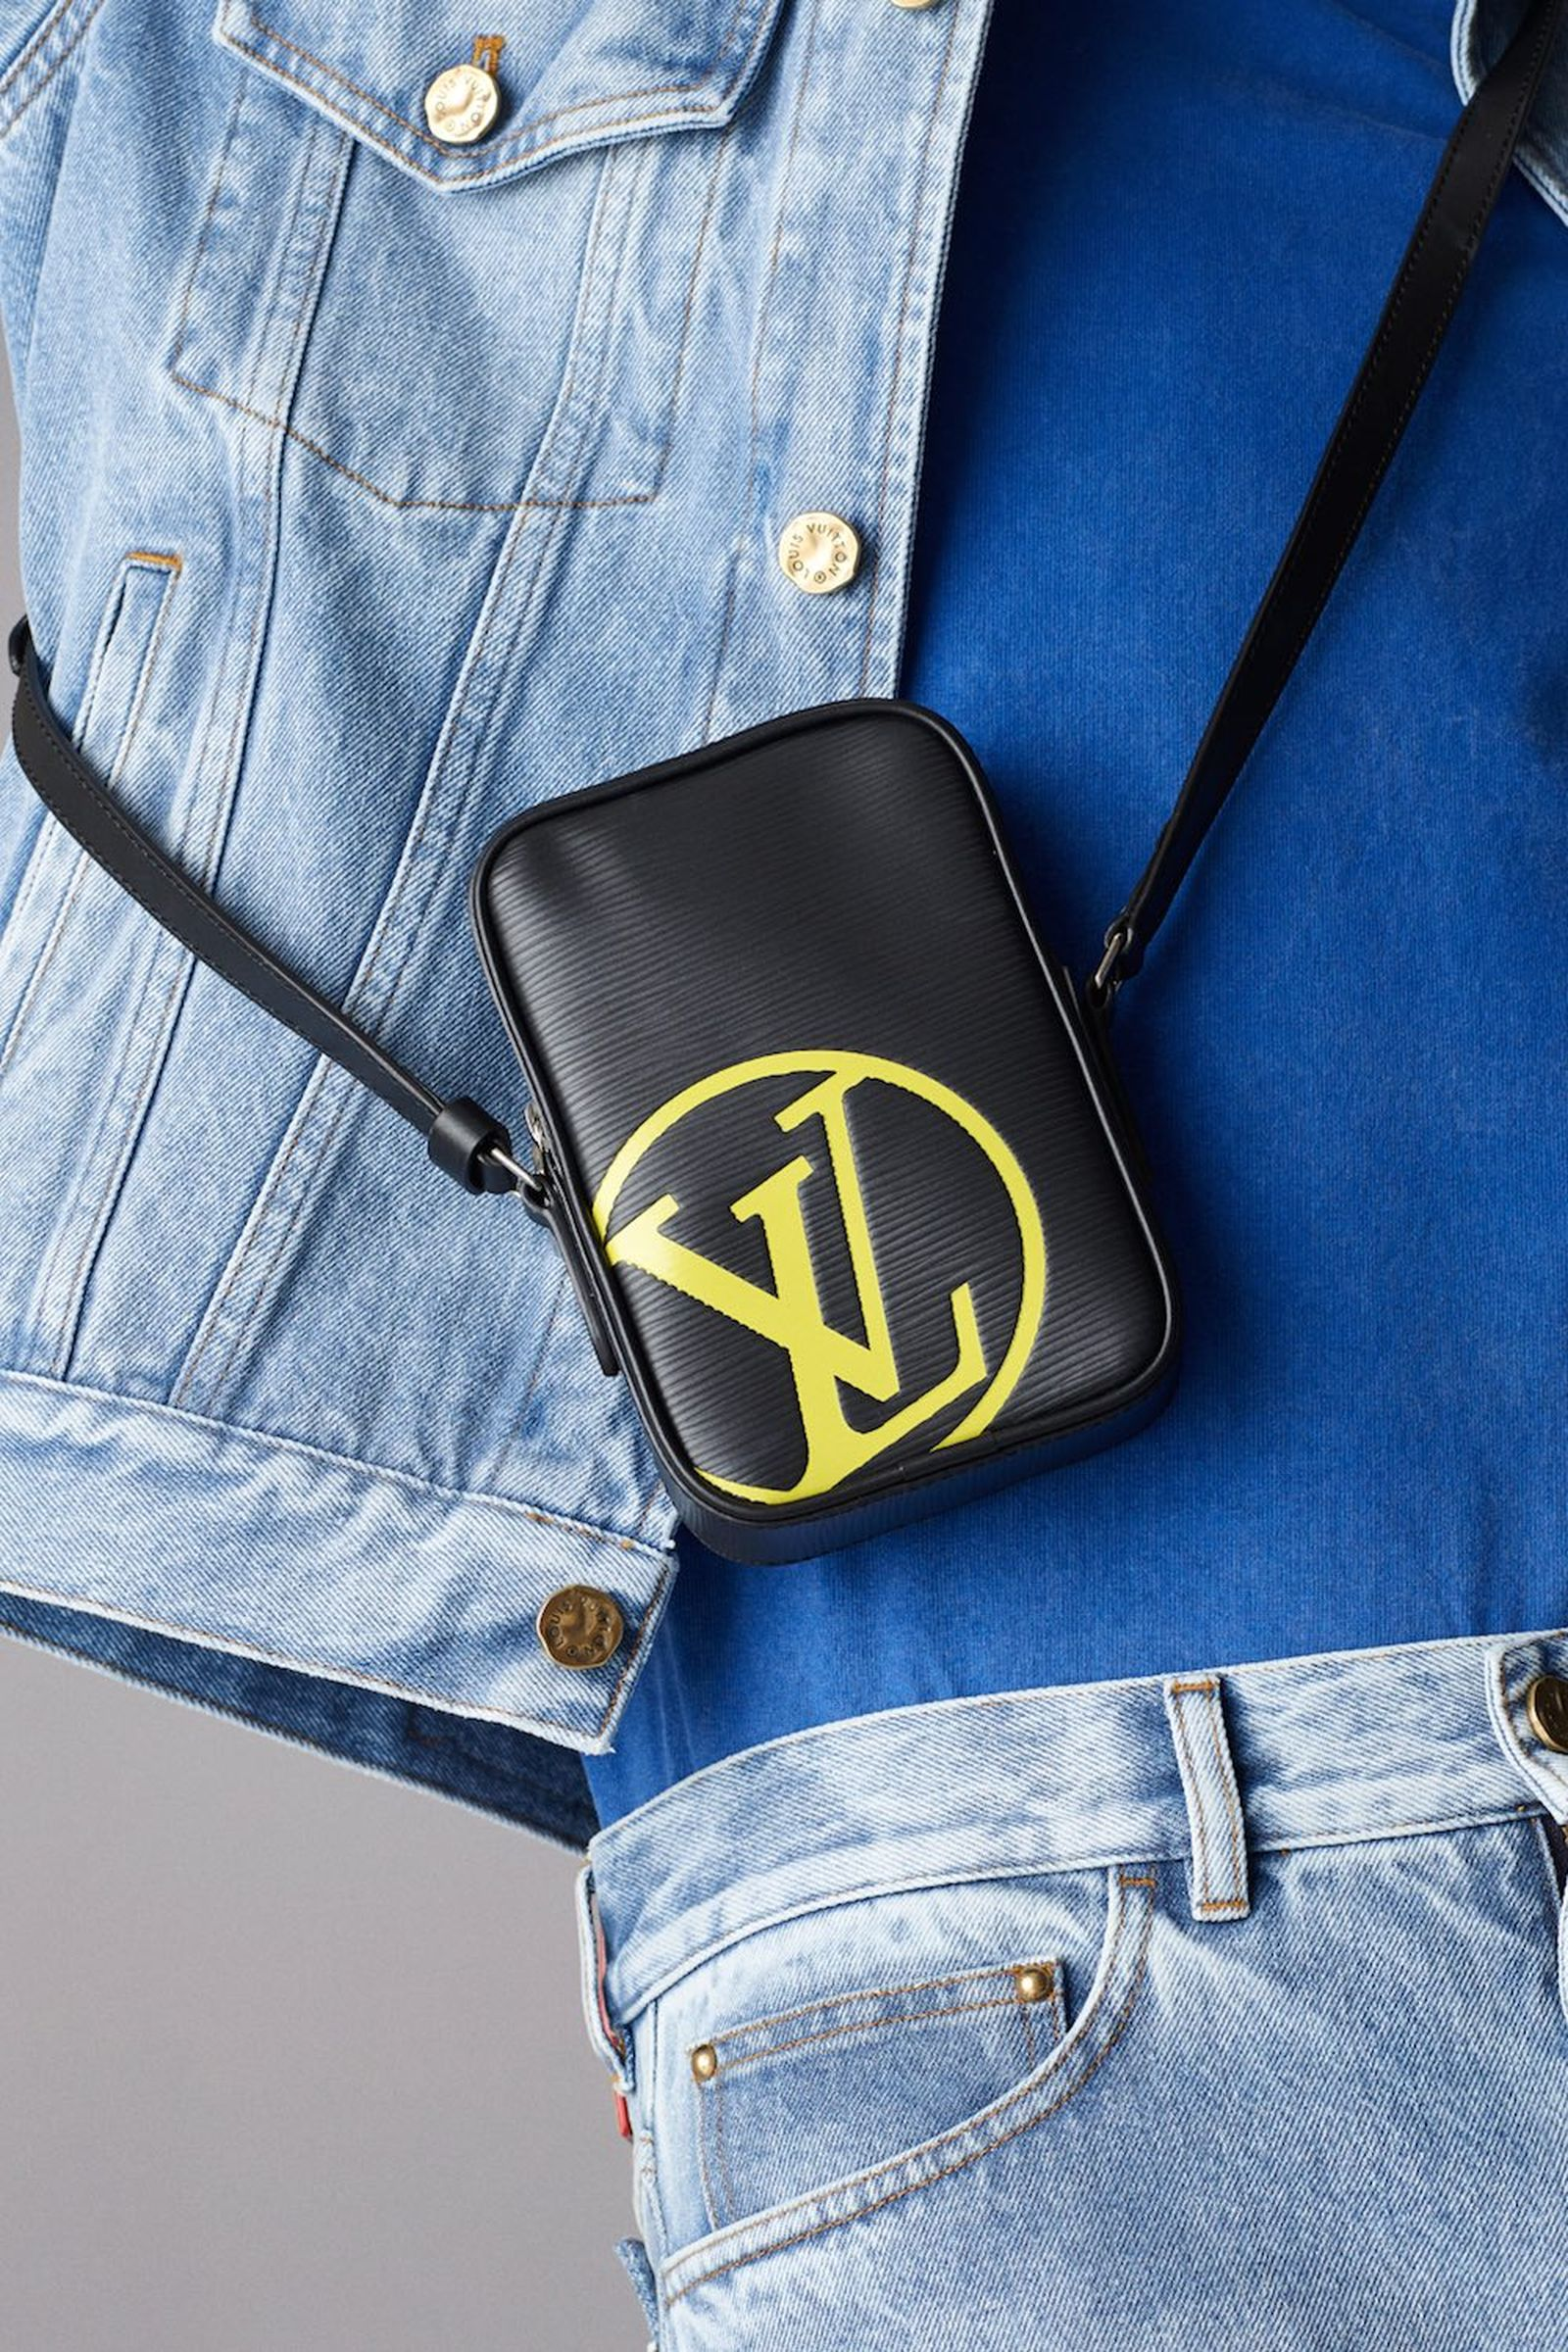 louis vuitton ss19 epi initials and patchwork accessories